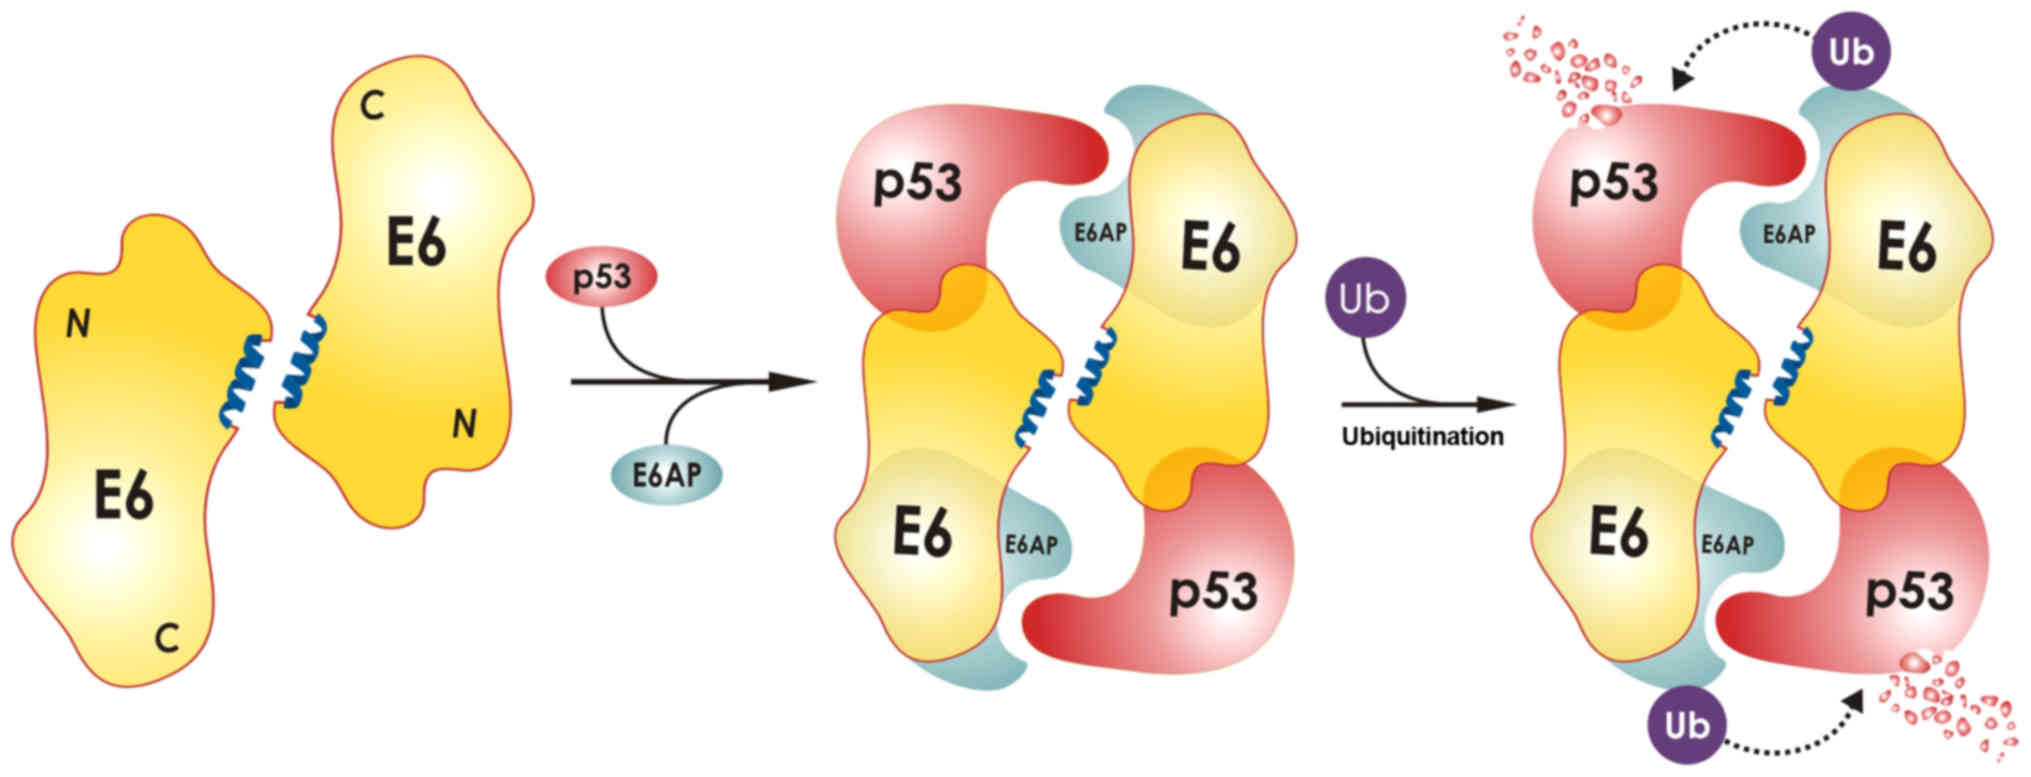 novel structural approaches concerning hpv proteins insight into